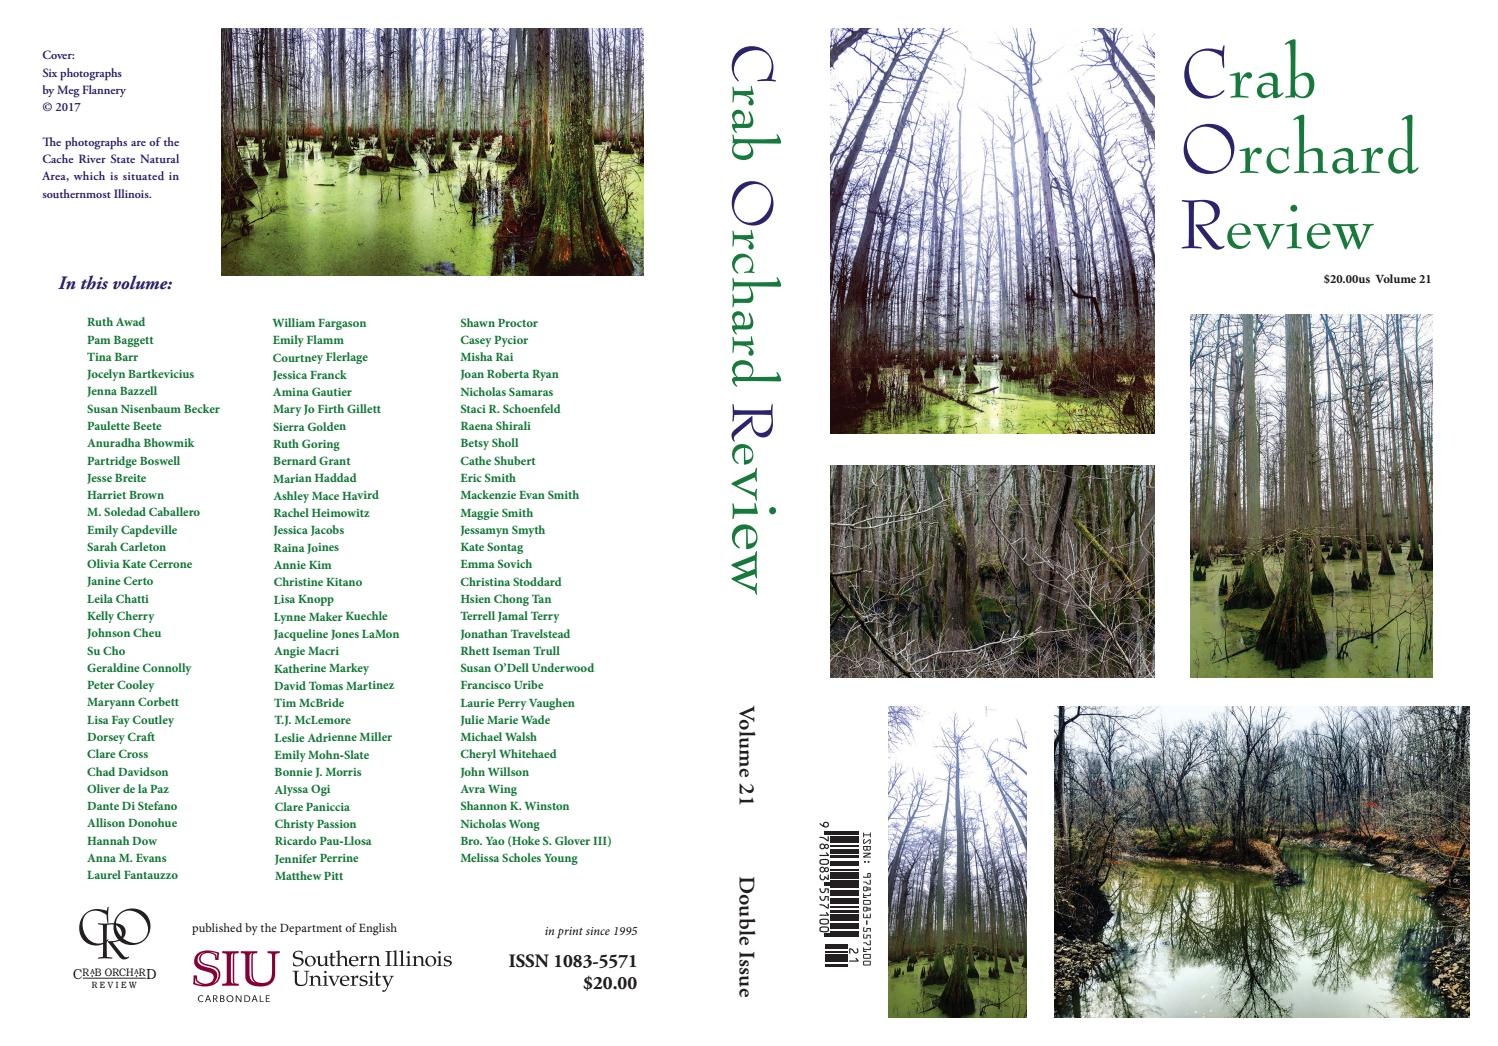 hight resolution of crab orchard review vol 21 double issue 2017 by crab orchard review issuu